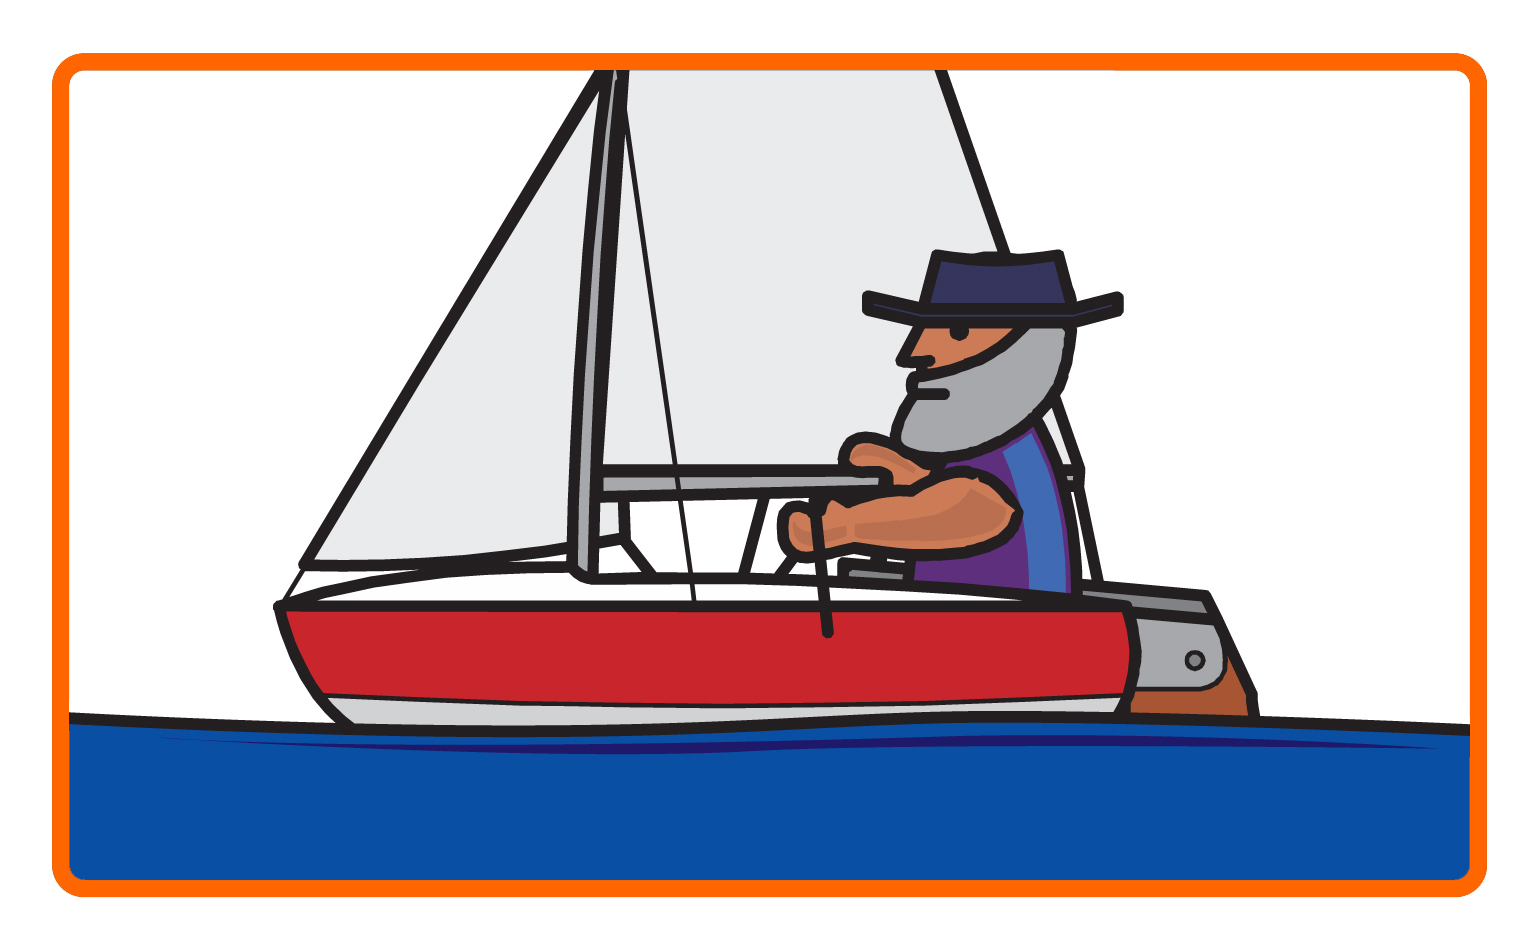 Platty watersports in the. Boating clipart group sailor